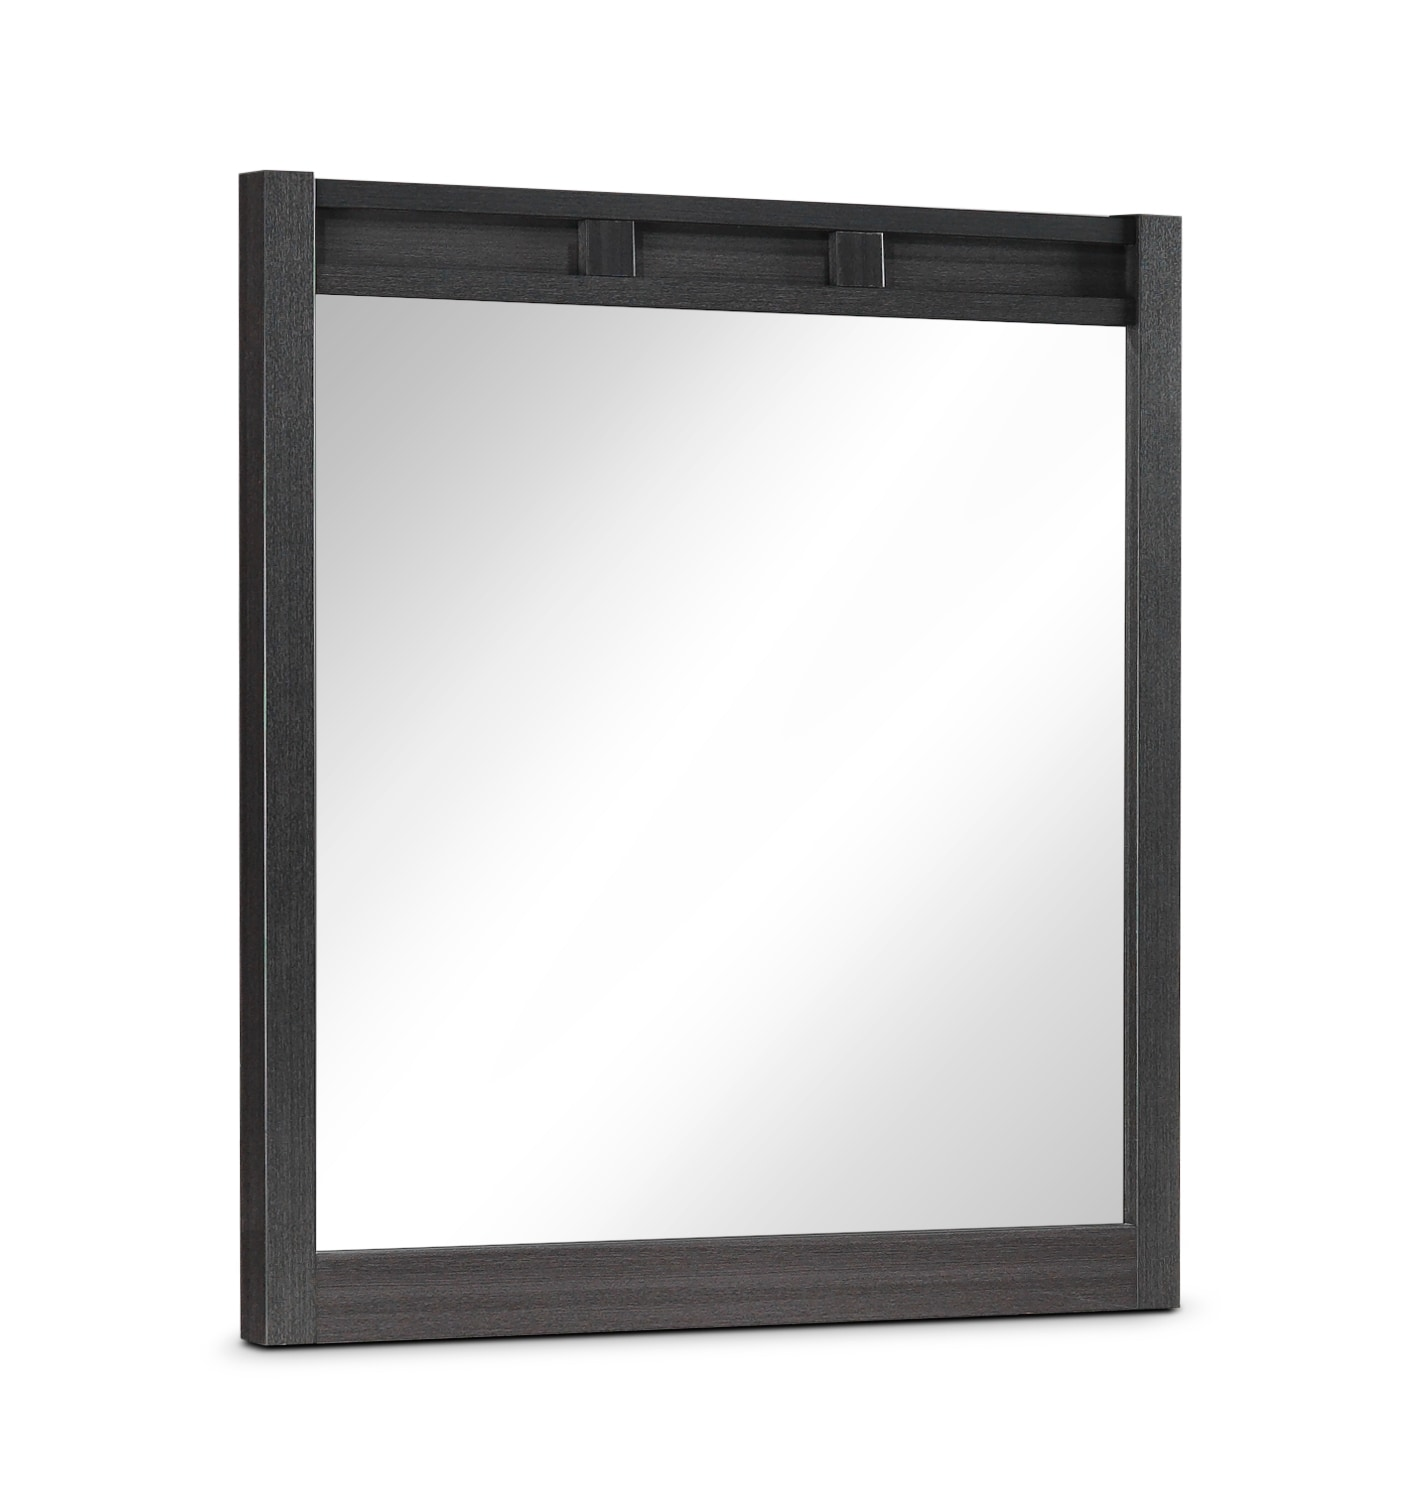 Bedroom Furniture - Santee Mirror - Charcoal & White